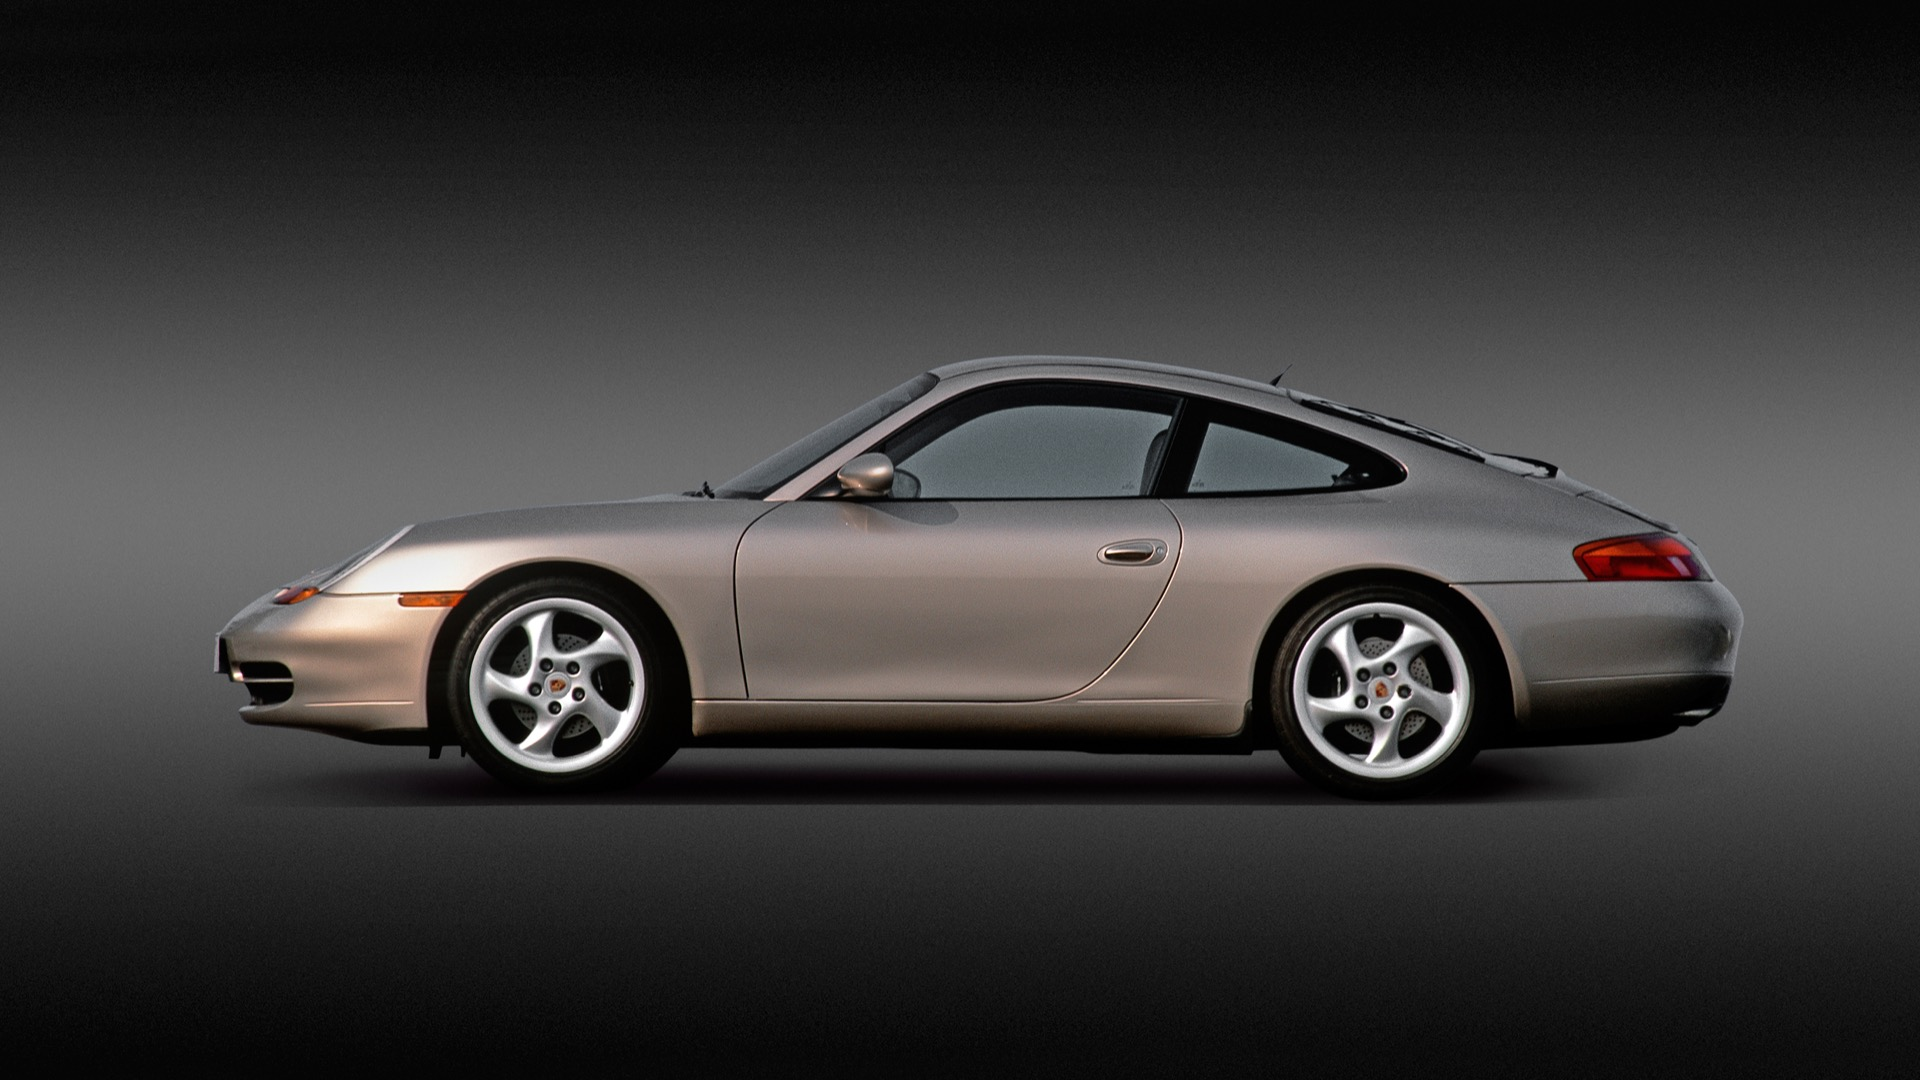 1998, 911 Carrera Coupé, Typ 996, 3,4 Liter, Generationen